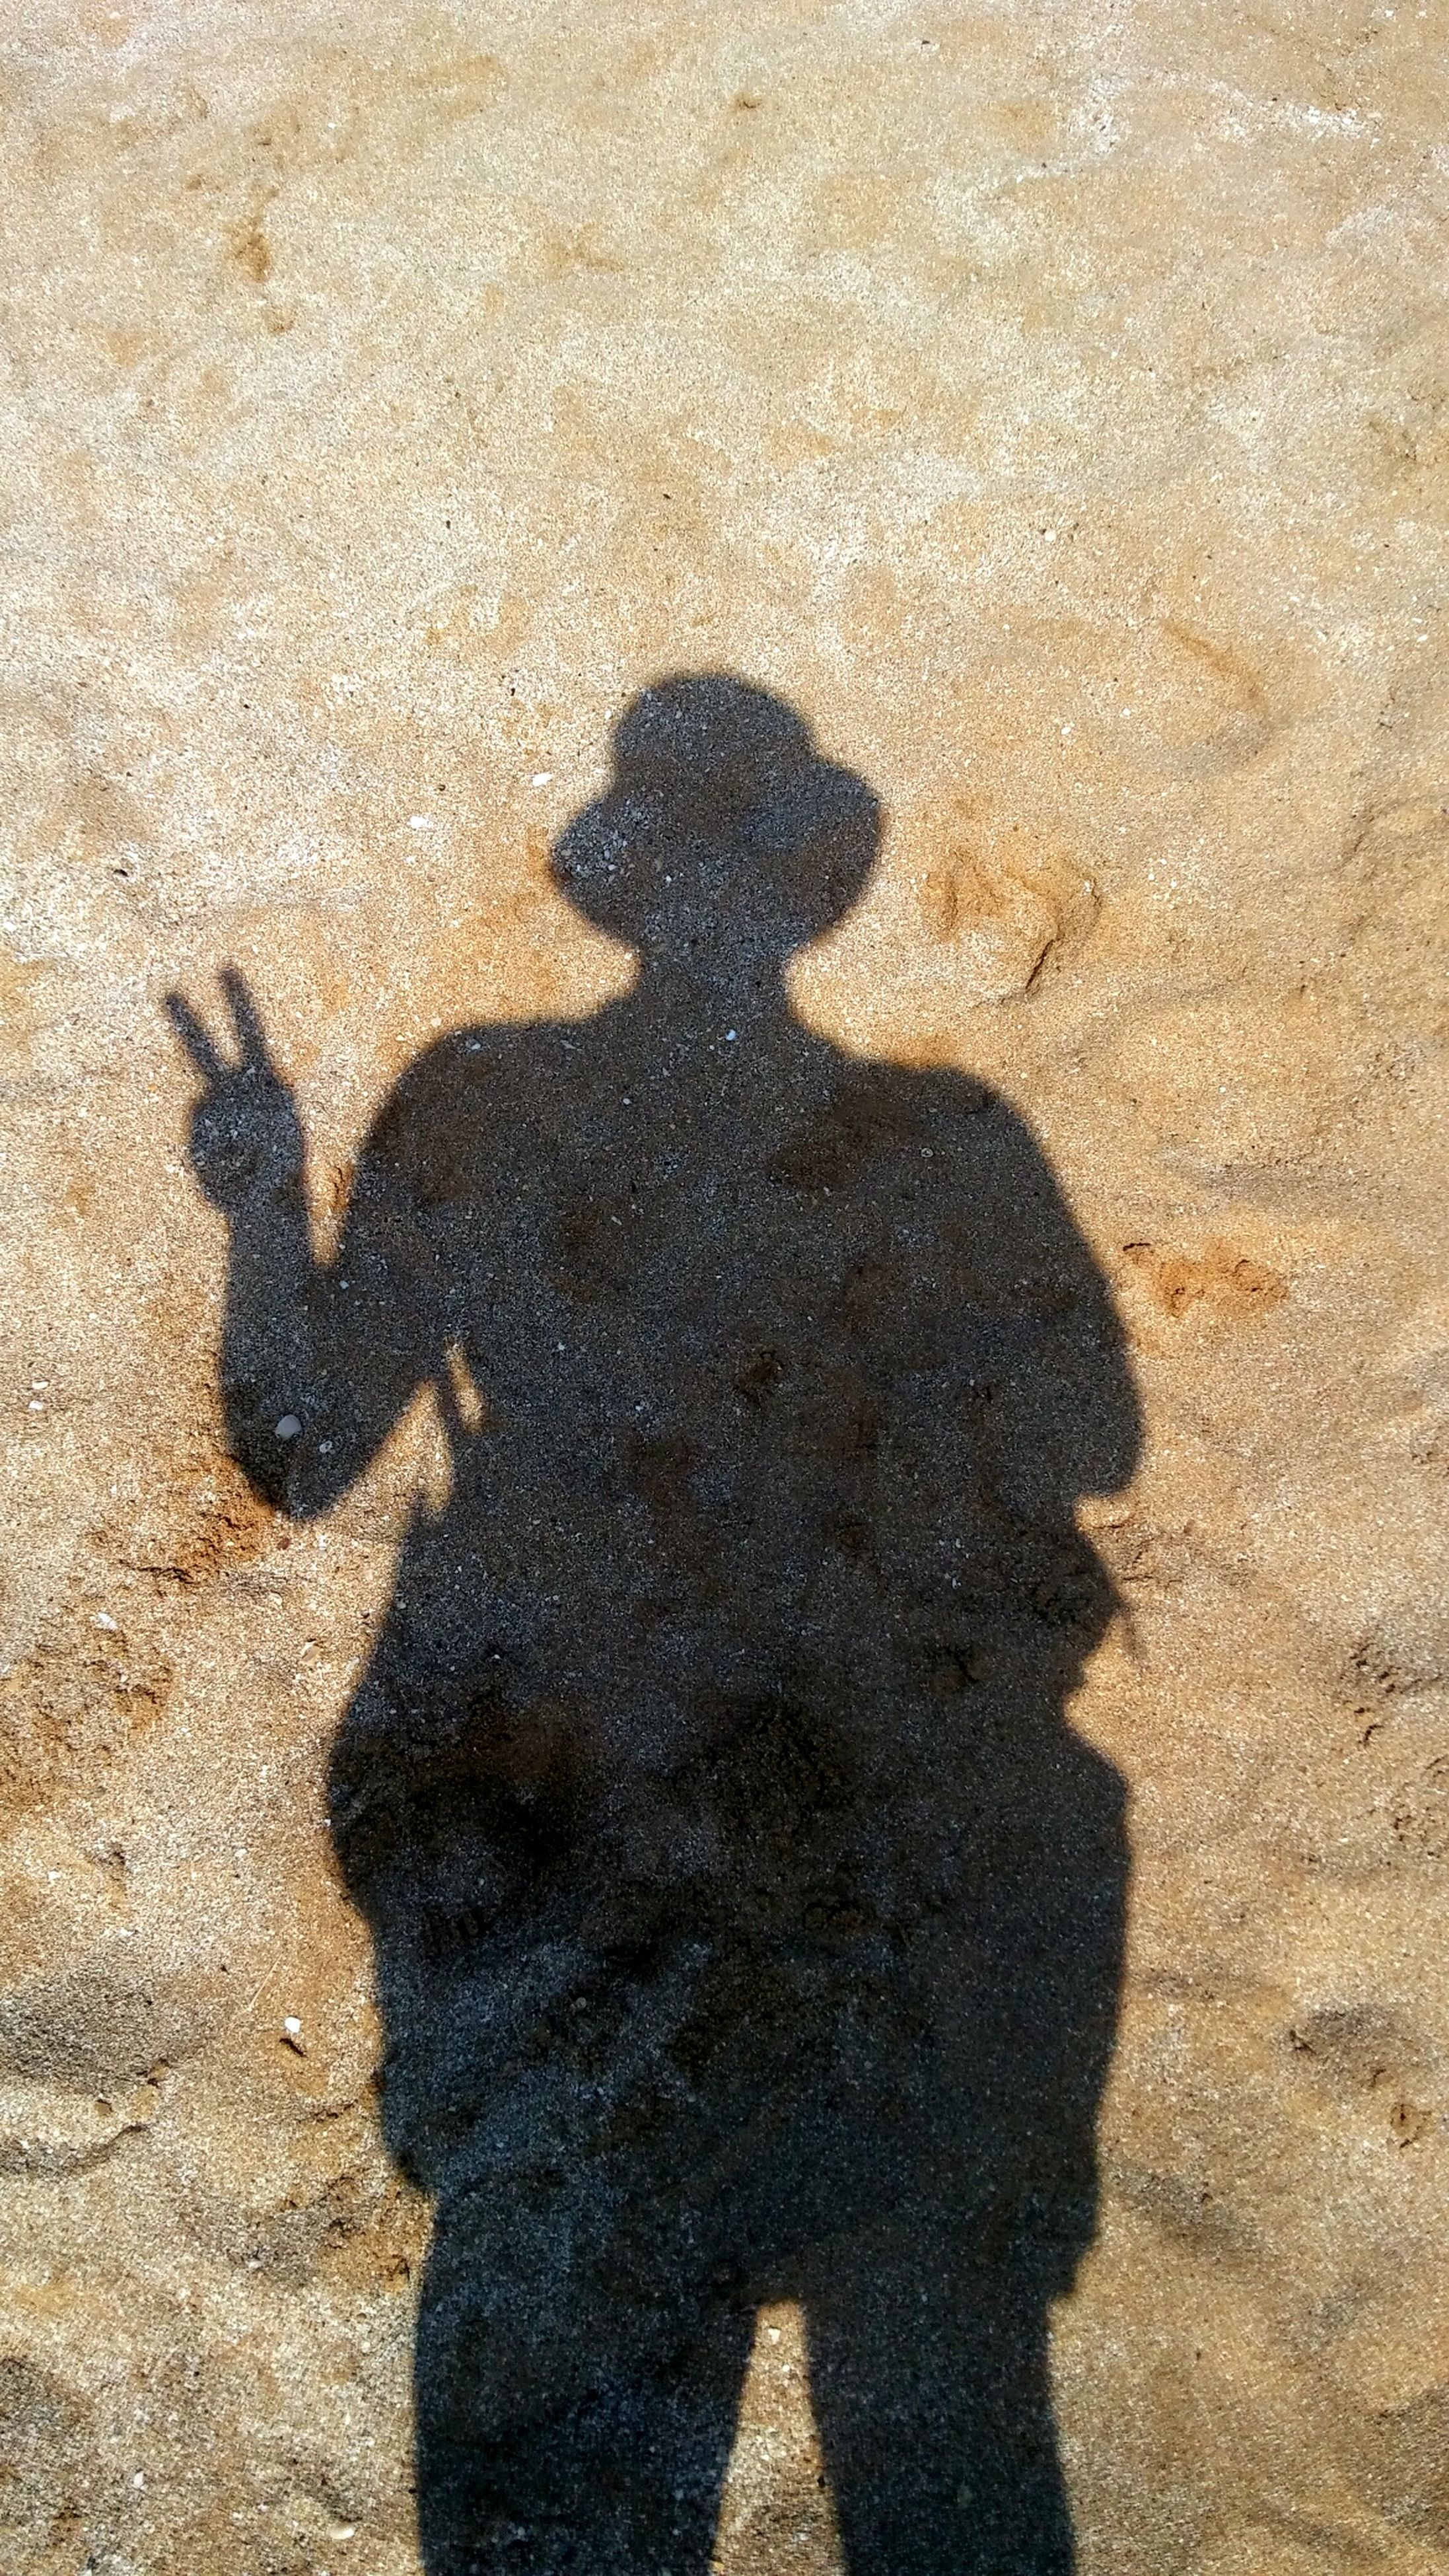 shadow, focus on shadow, sunlight, silhouette, one person, day, outdoors, people, adults only, adult